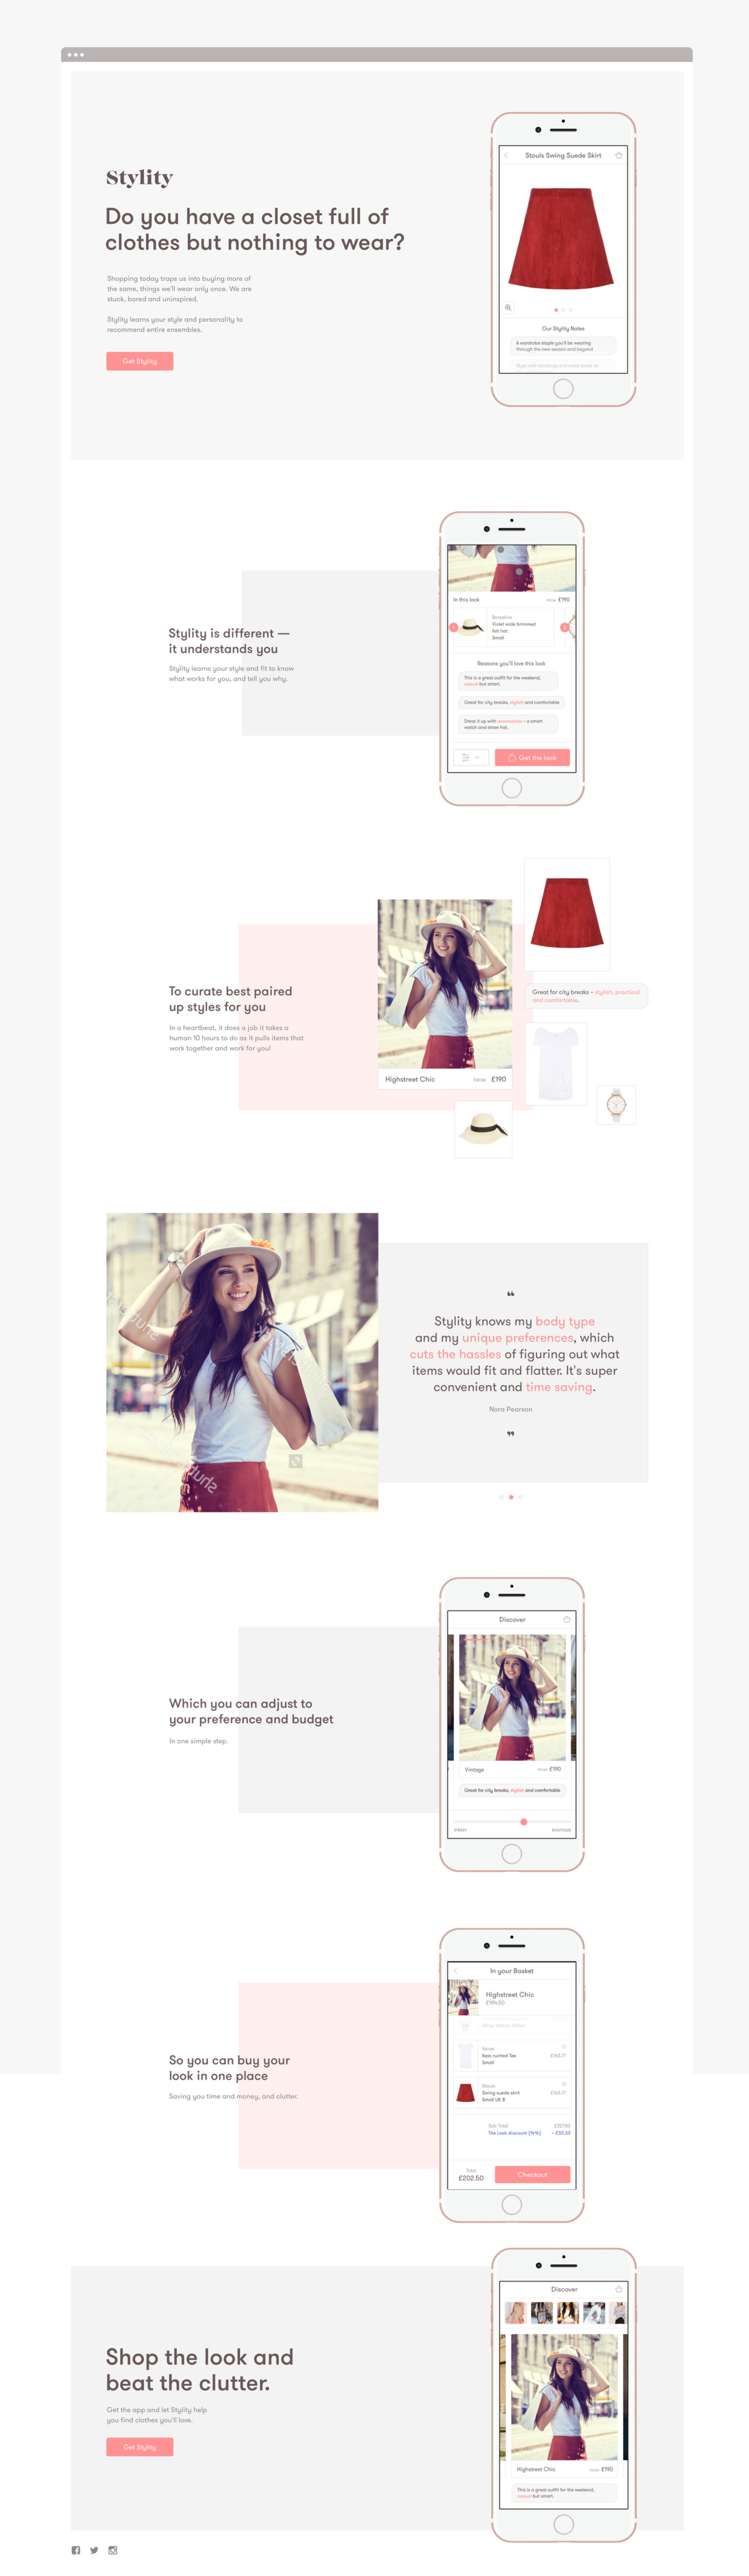 Design direction for a fashion discovery app - WNW